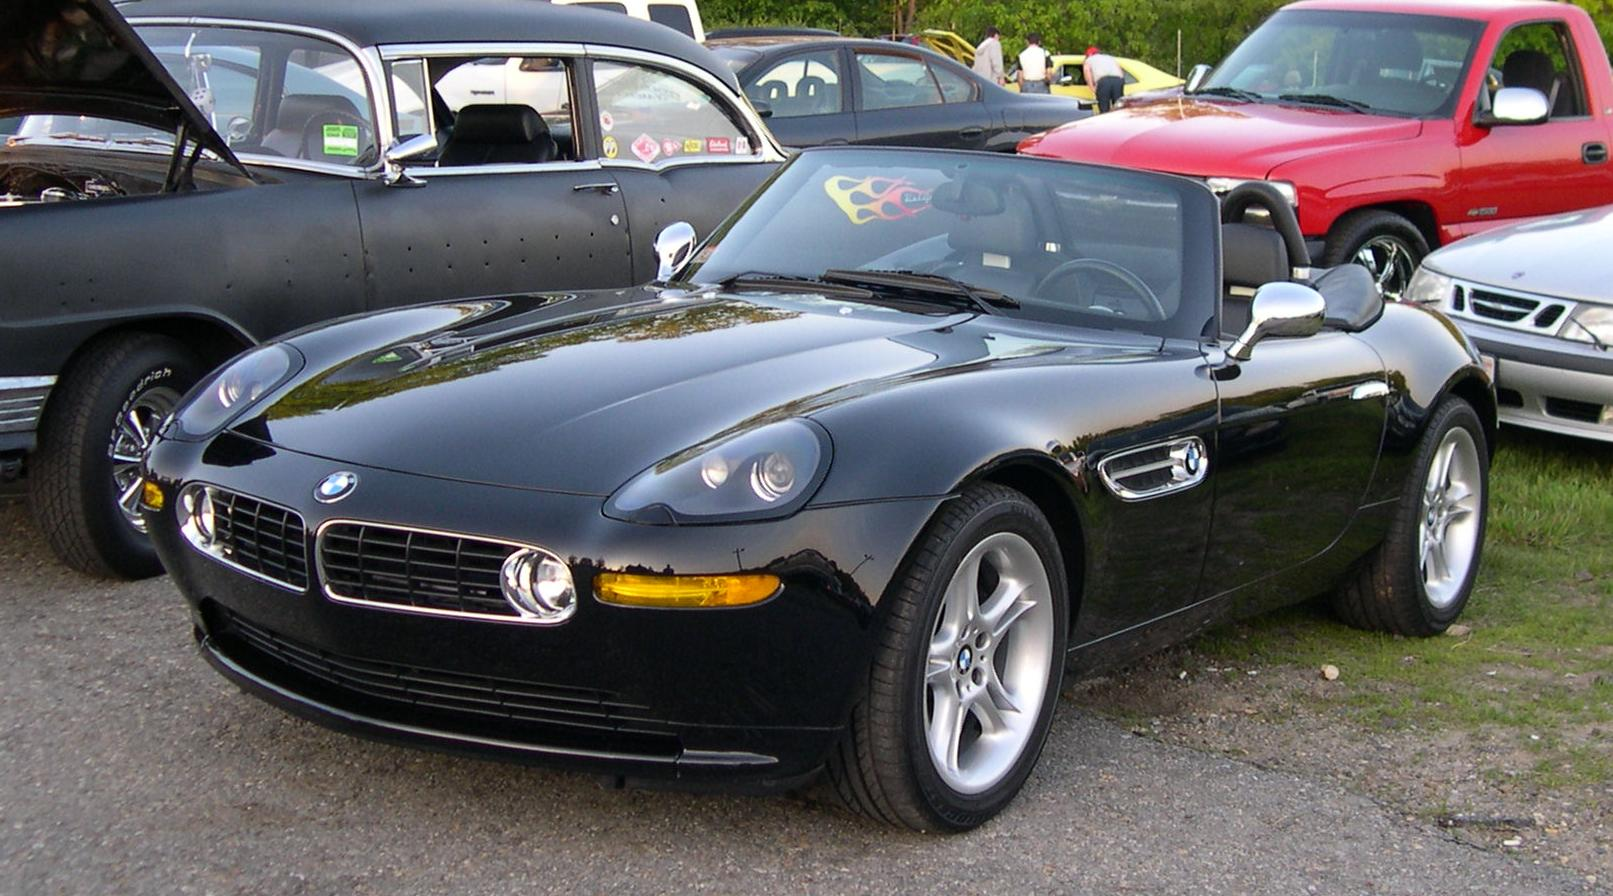 Car Sight: Bmw z8 Cars Photos